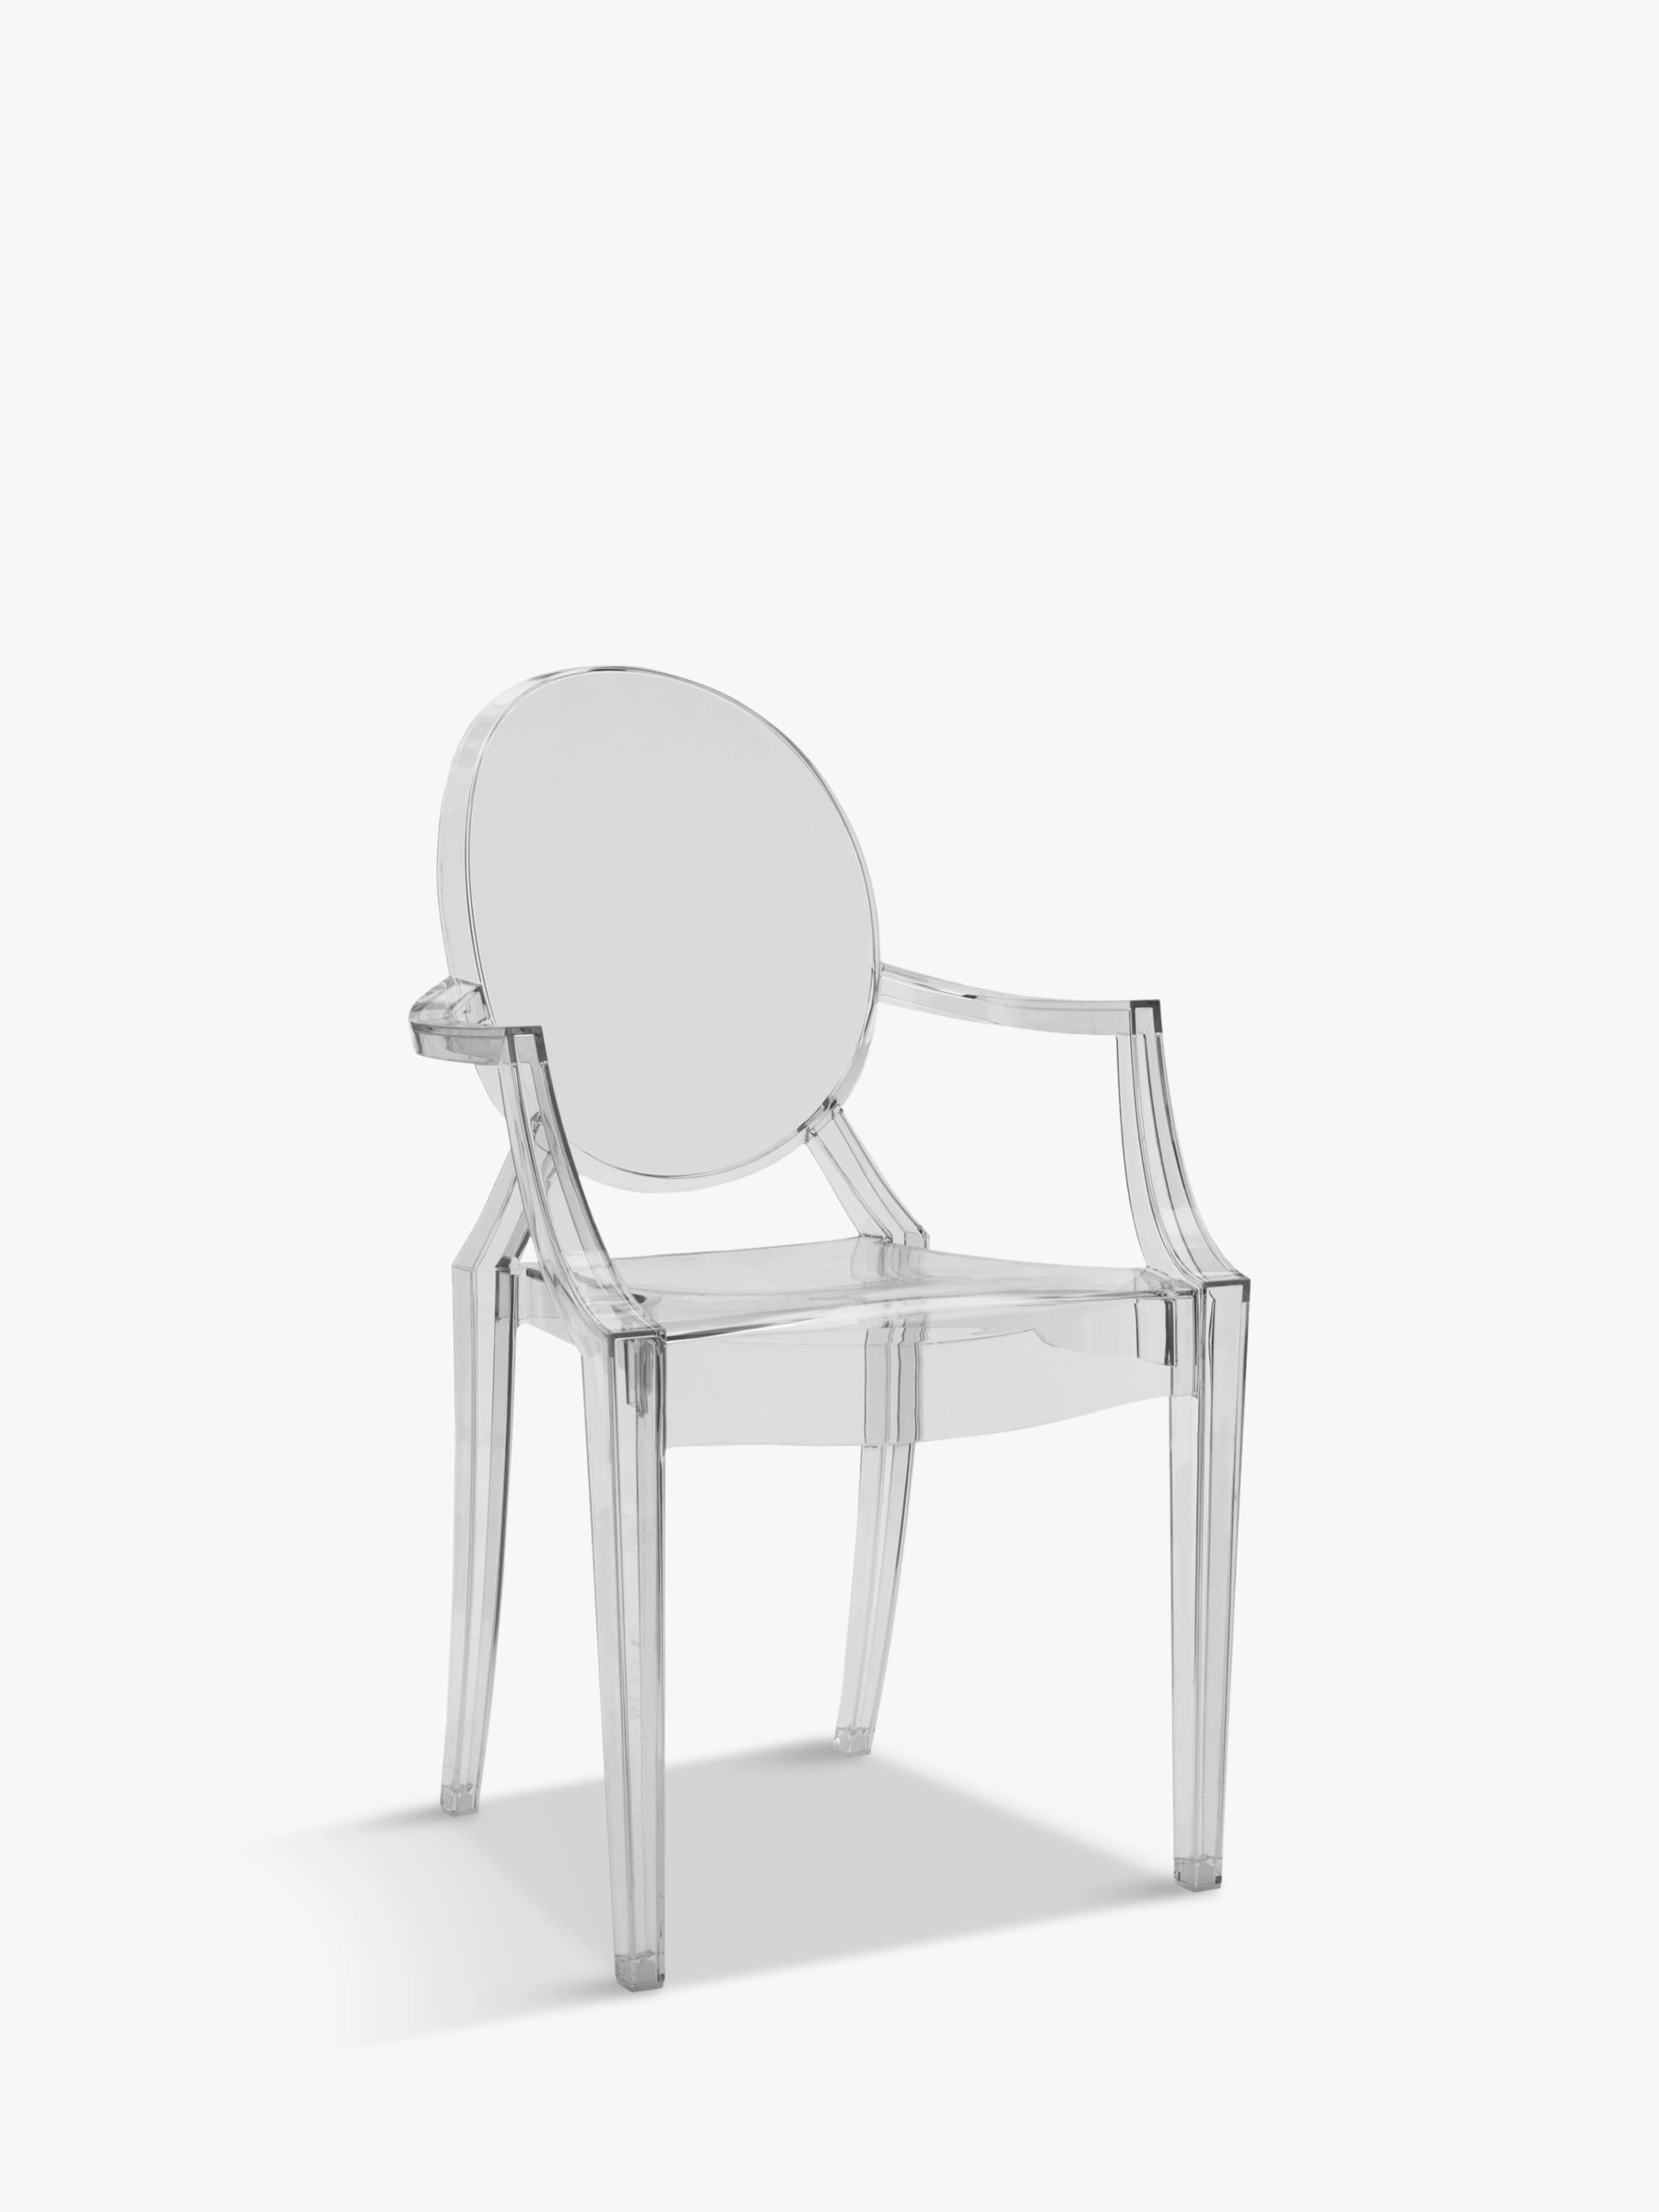 Philip Starck Philippe Starck For Kartell Louis Ghost Chair At John Lewis Partners